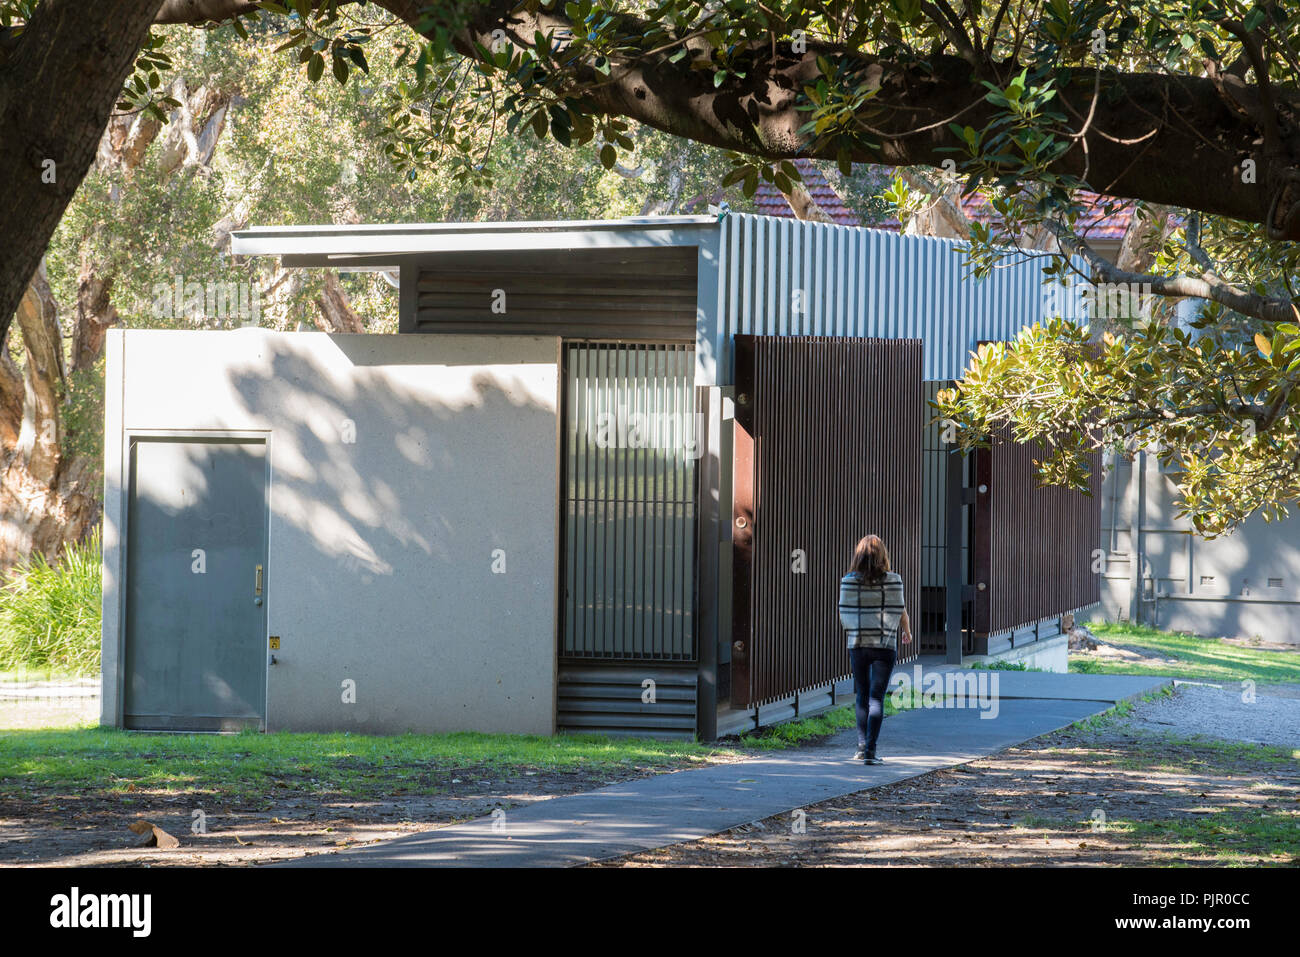 Public conveniences (toilets) in Centennial Park Sydney, Australia designed by the respected Architecture practice of Lahz Nimmo in Sydney - Stock Image